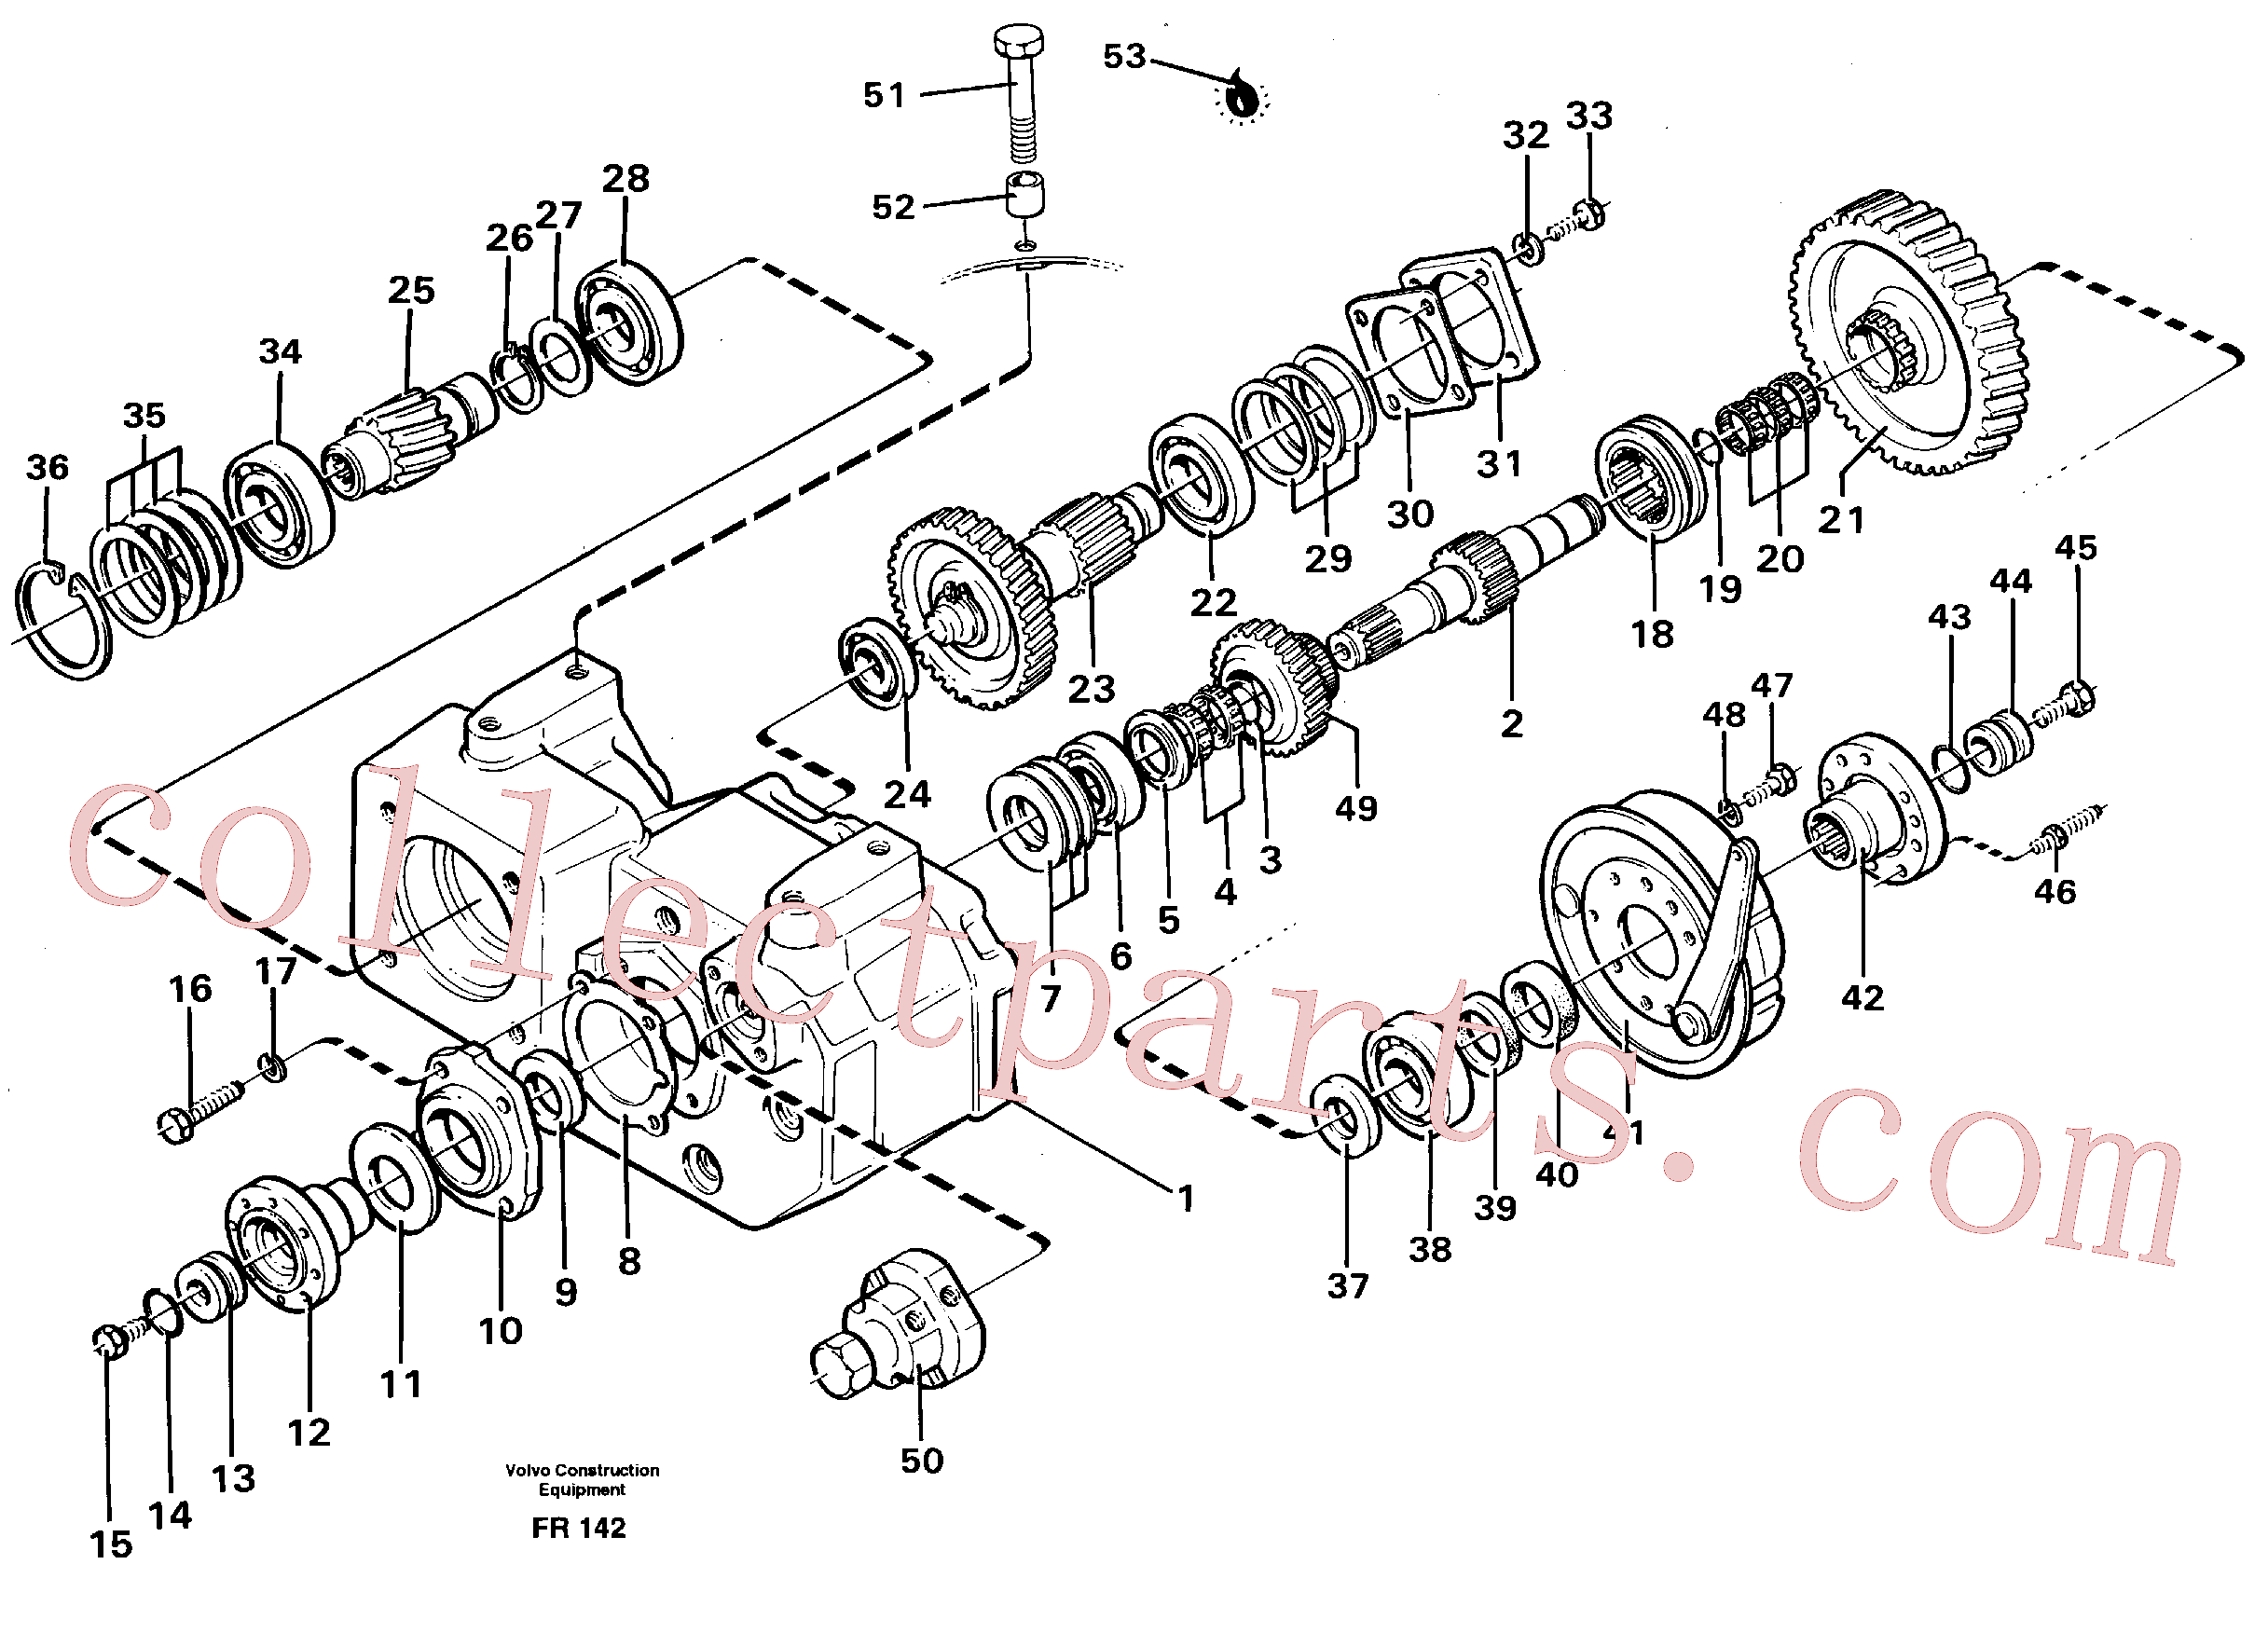 VOE914550 for Volvo Gear box, drive gear and shafts(FR142 assembly)